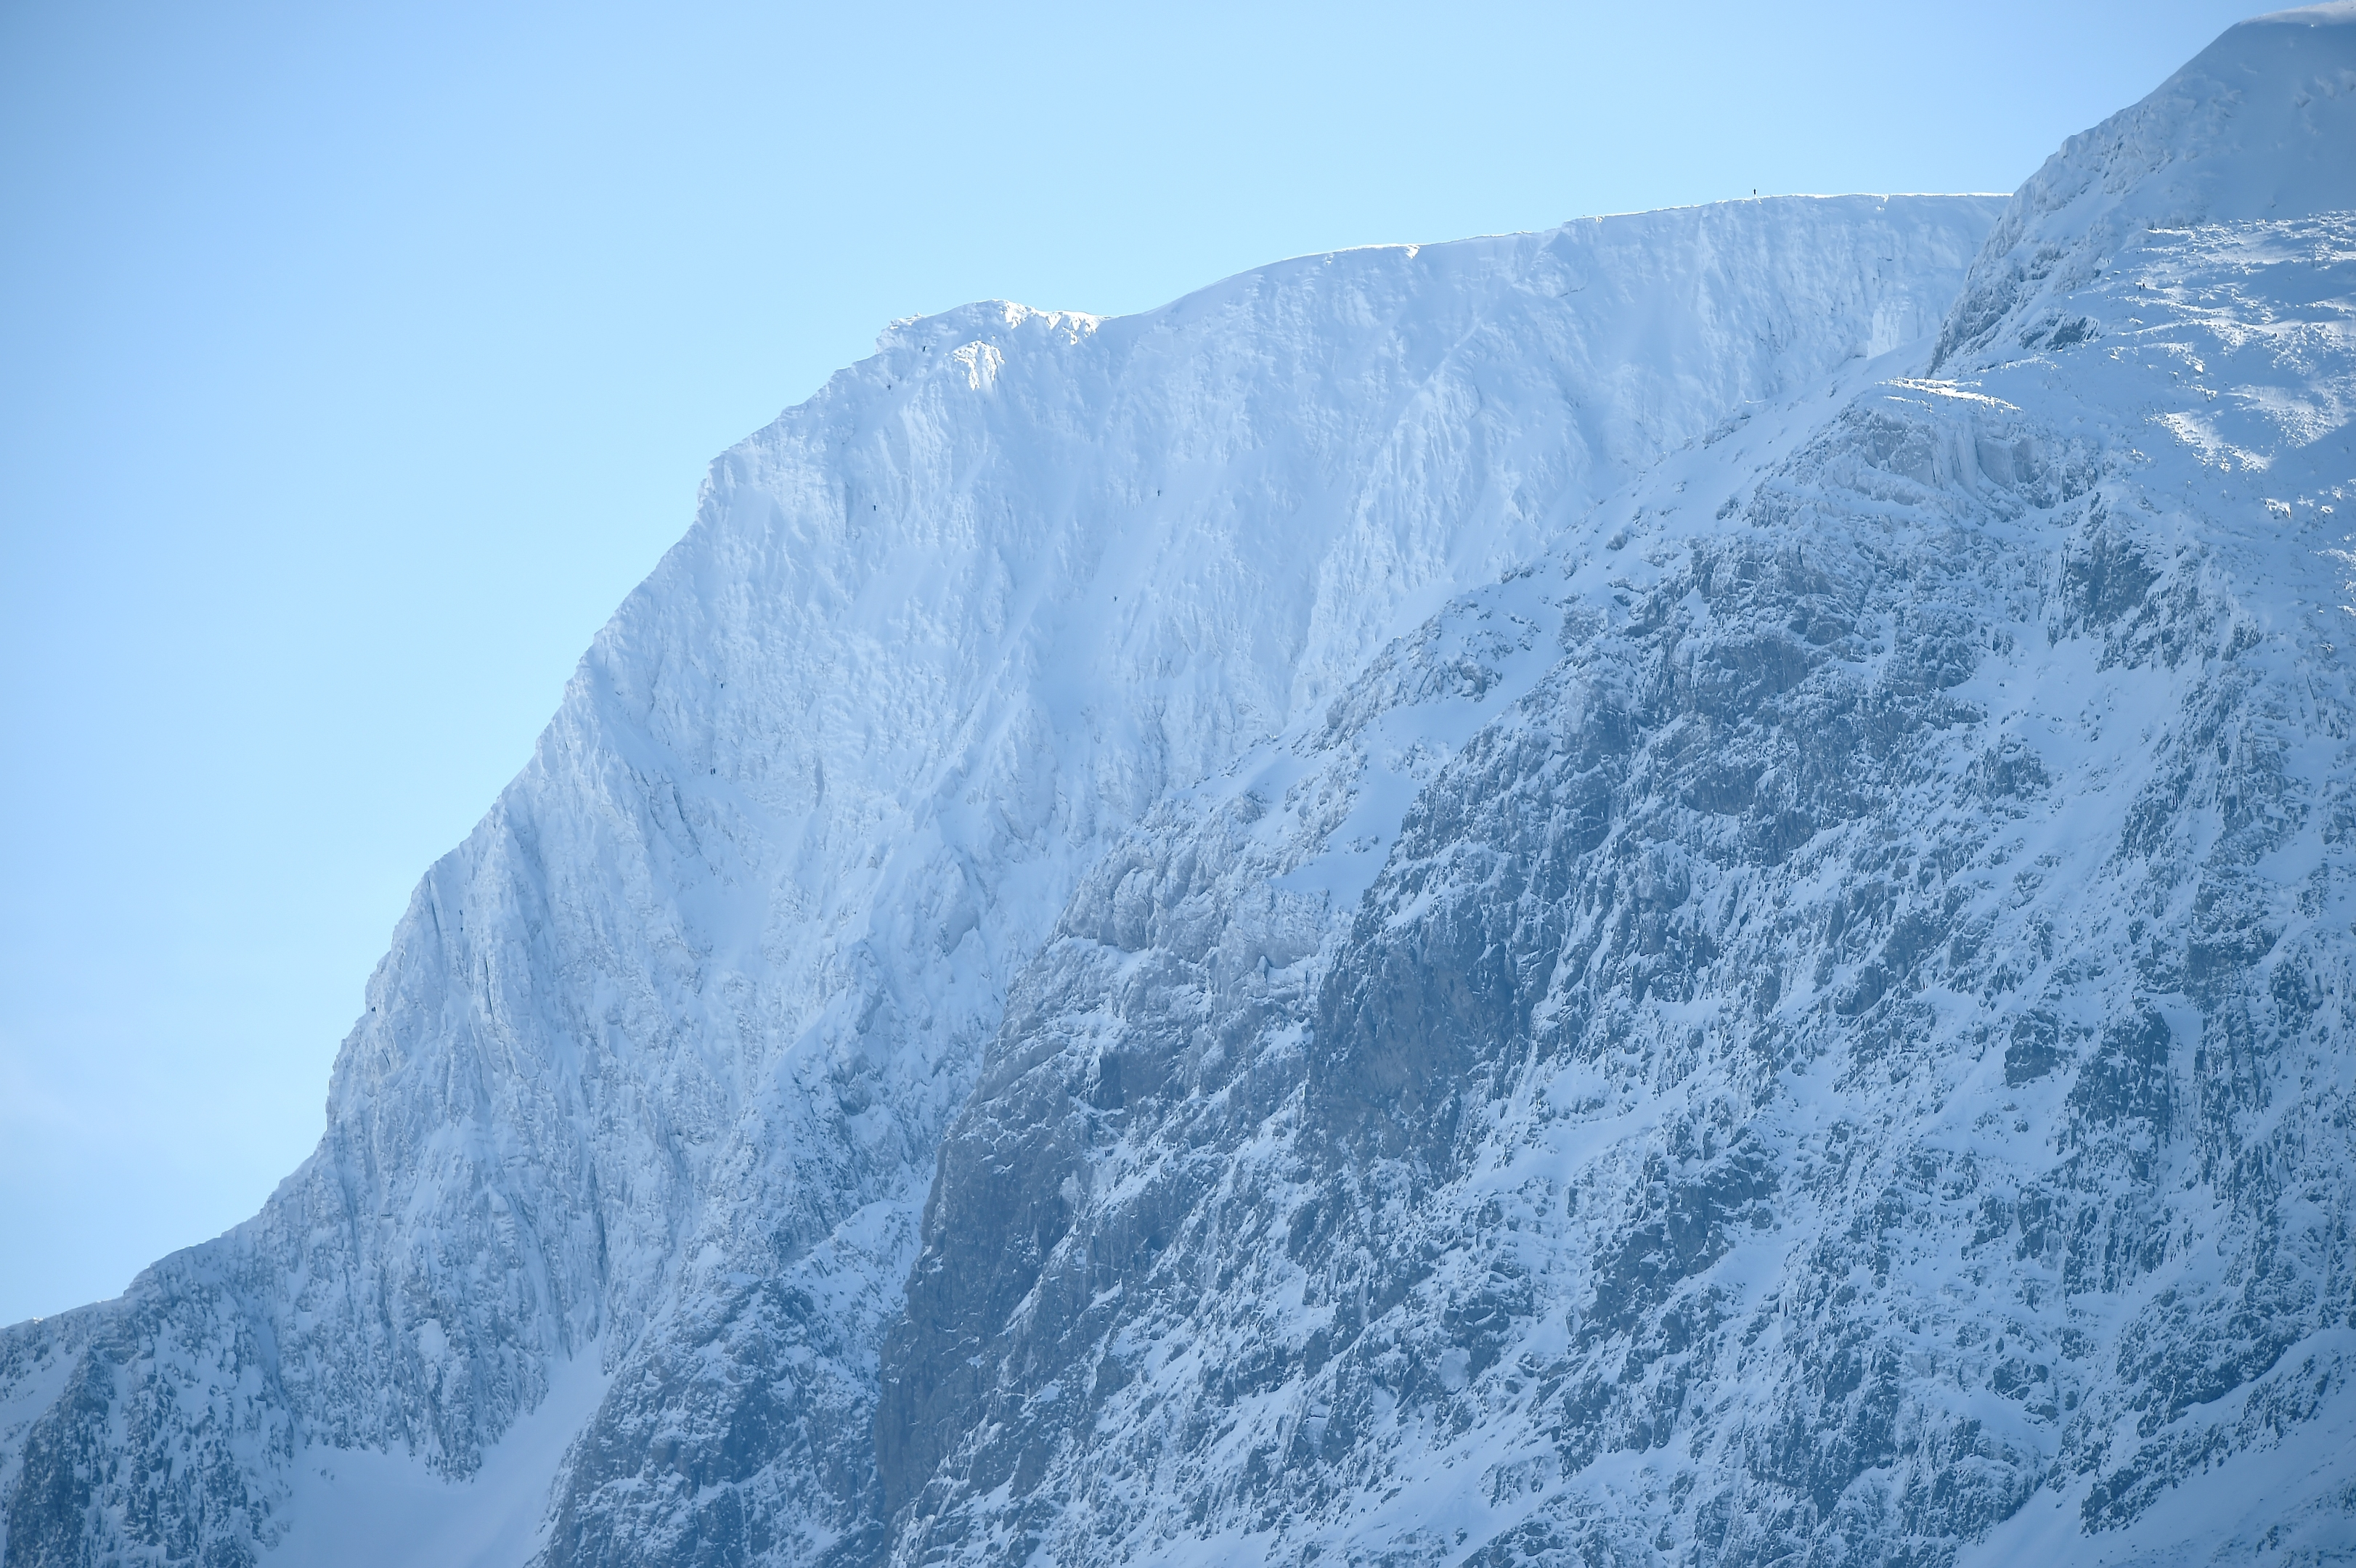 The north face of Ben Nevis in winter conditions